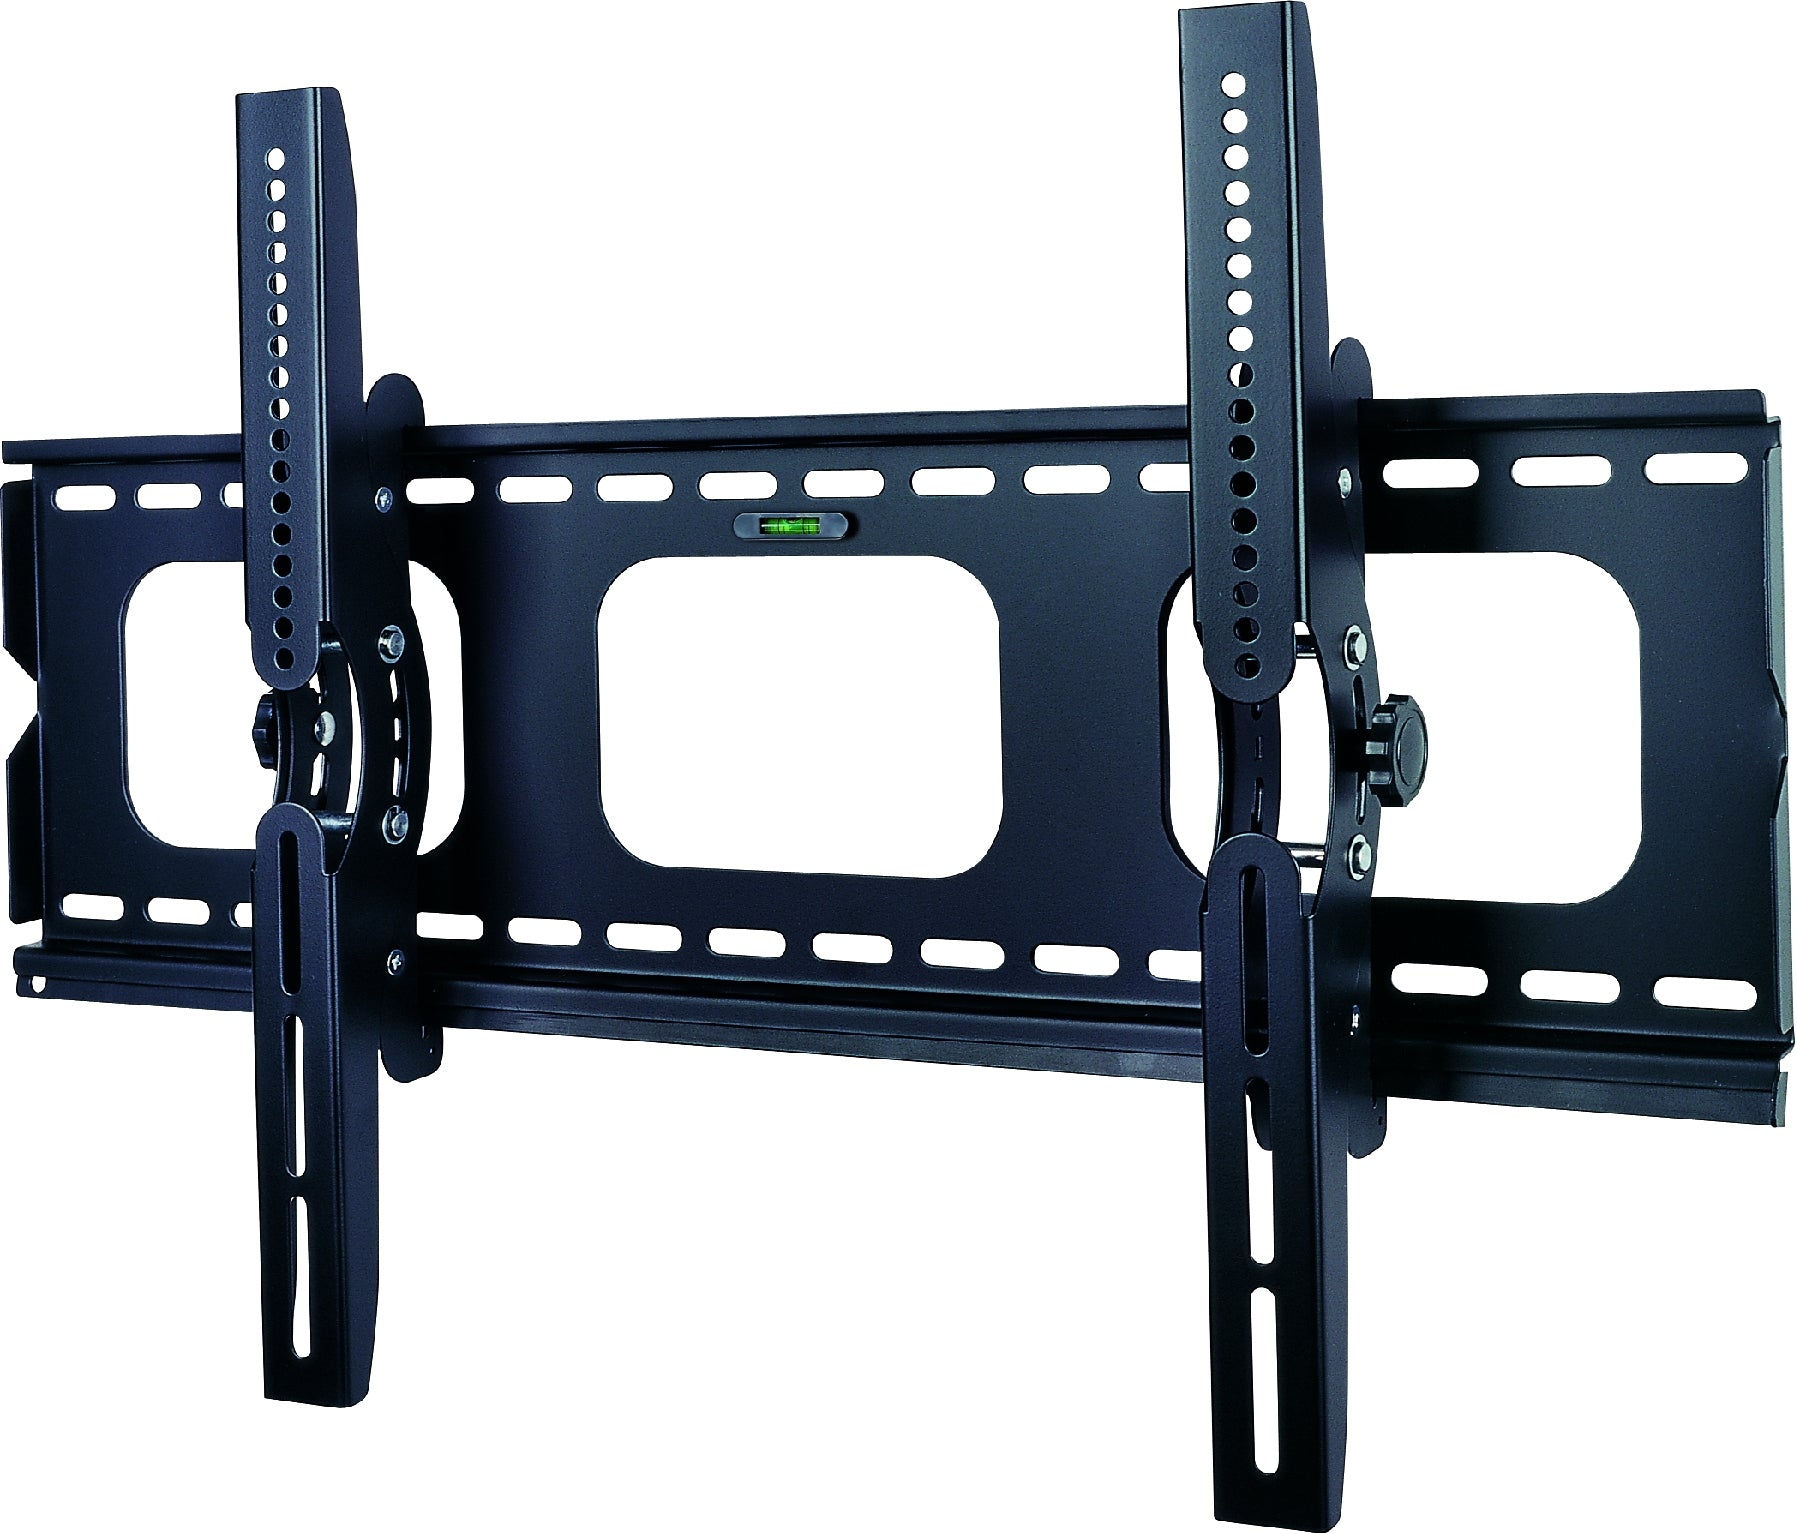 Heavy Duty Plasma LCD LED TV Wall Mount Bracket for 32-60 inches TVs